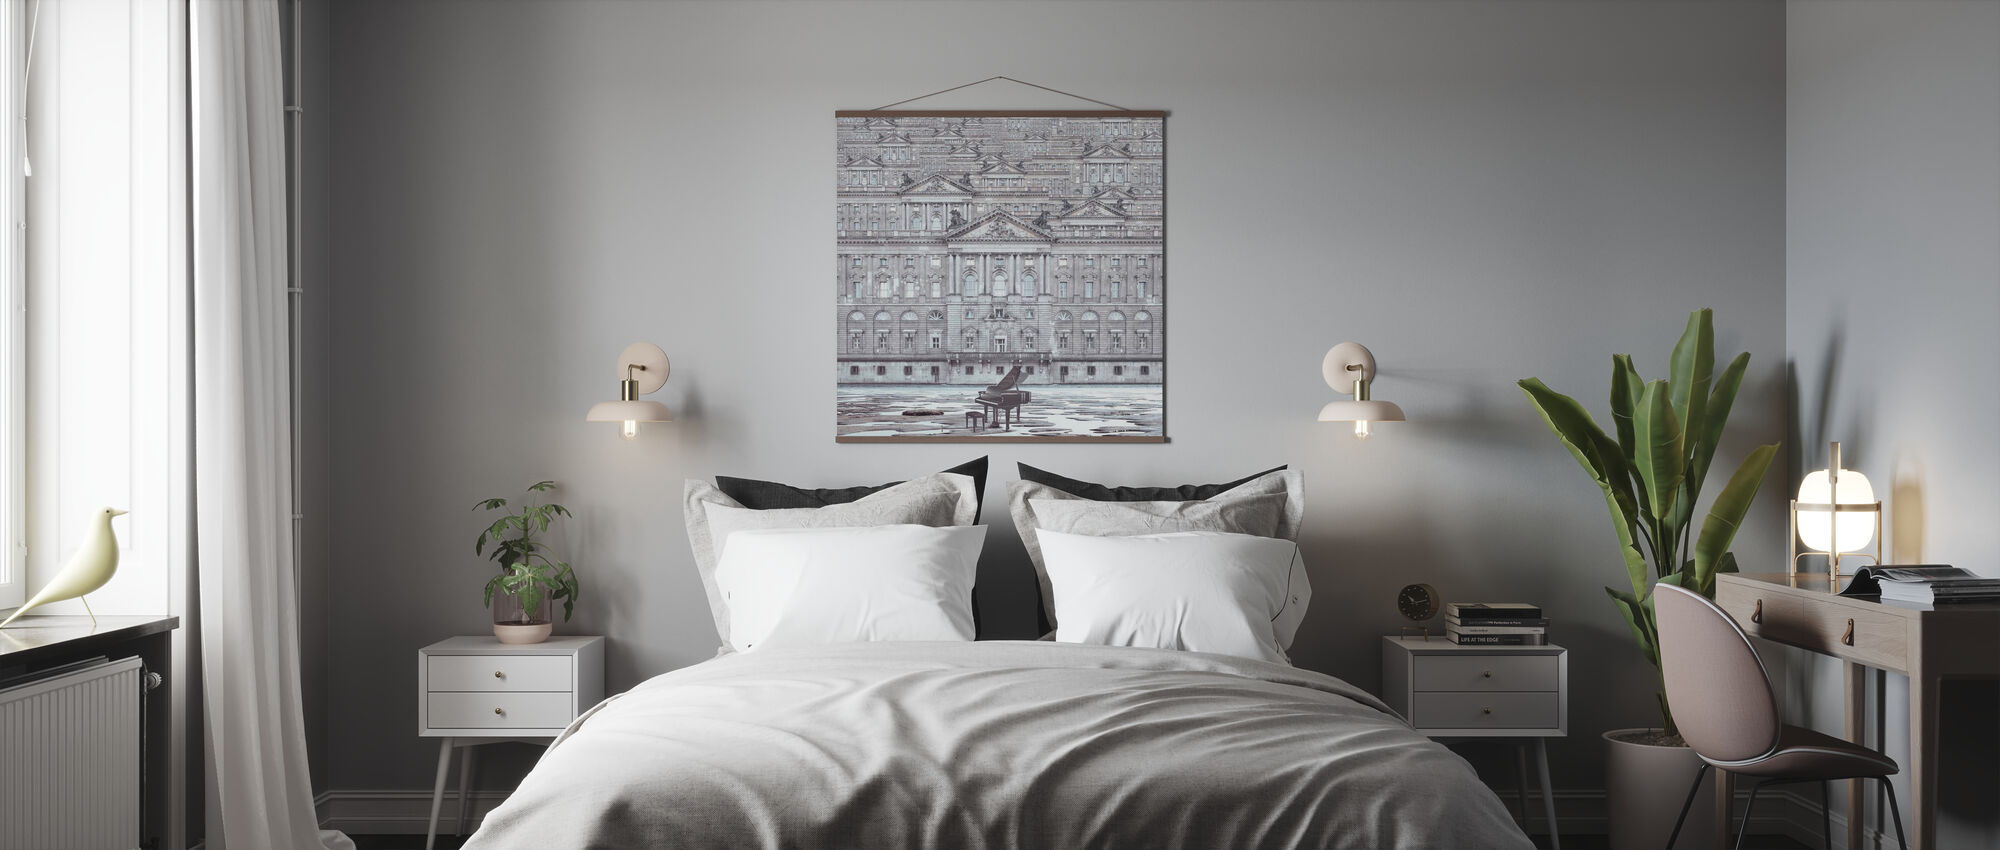 Symphony Gates - Poster - Bedroom